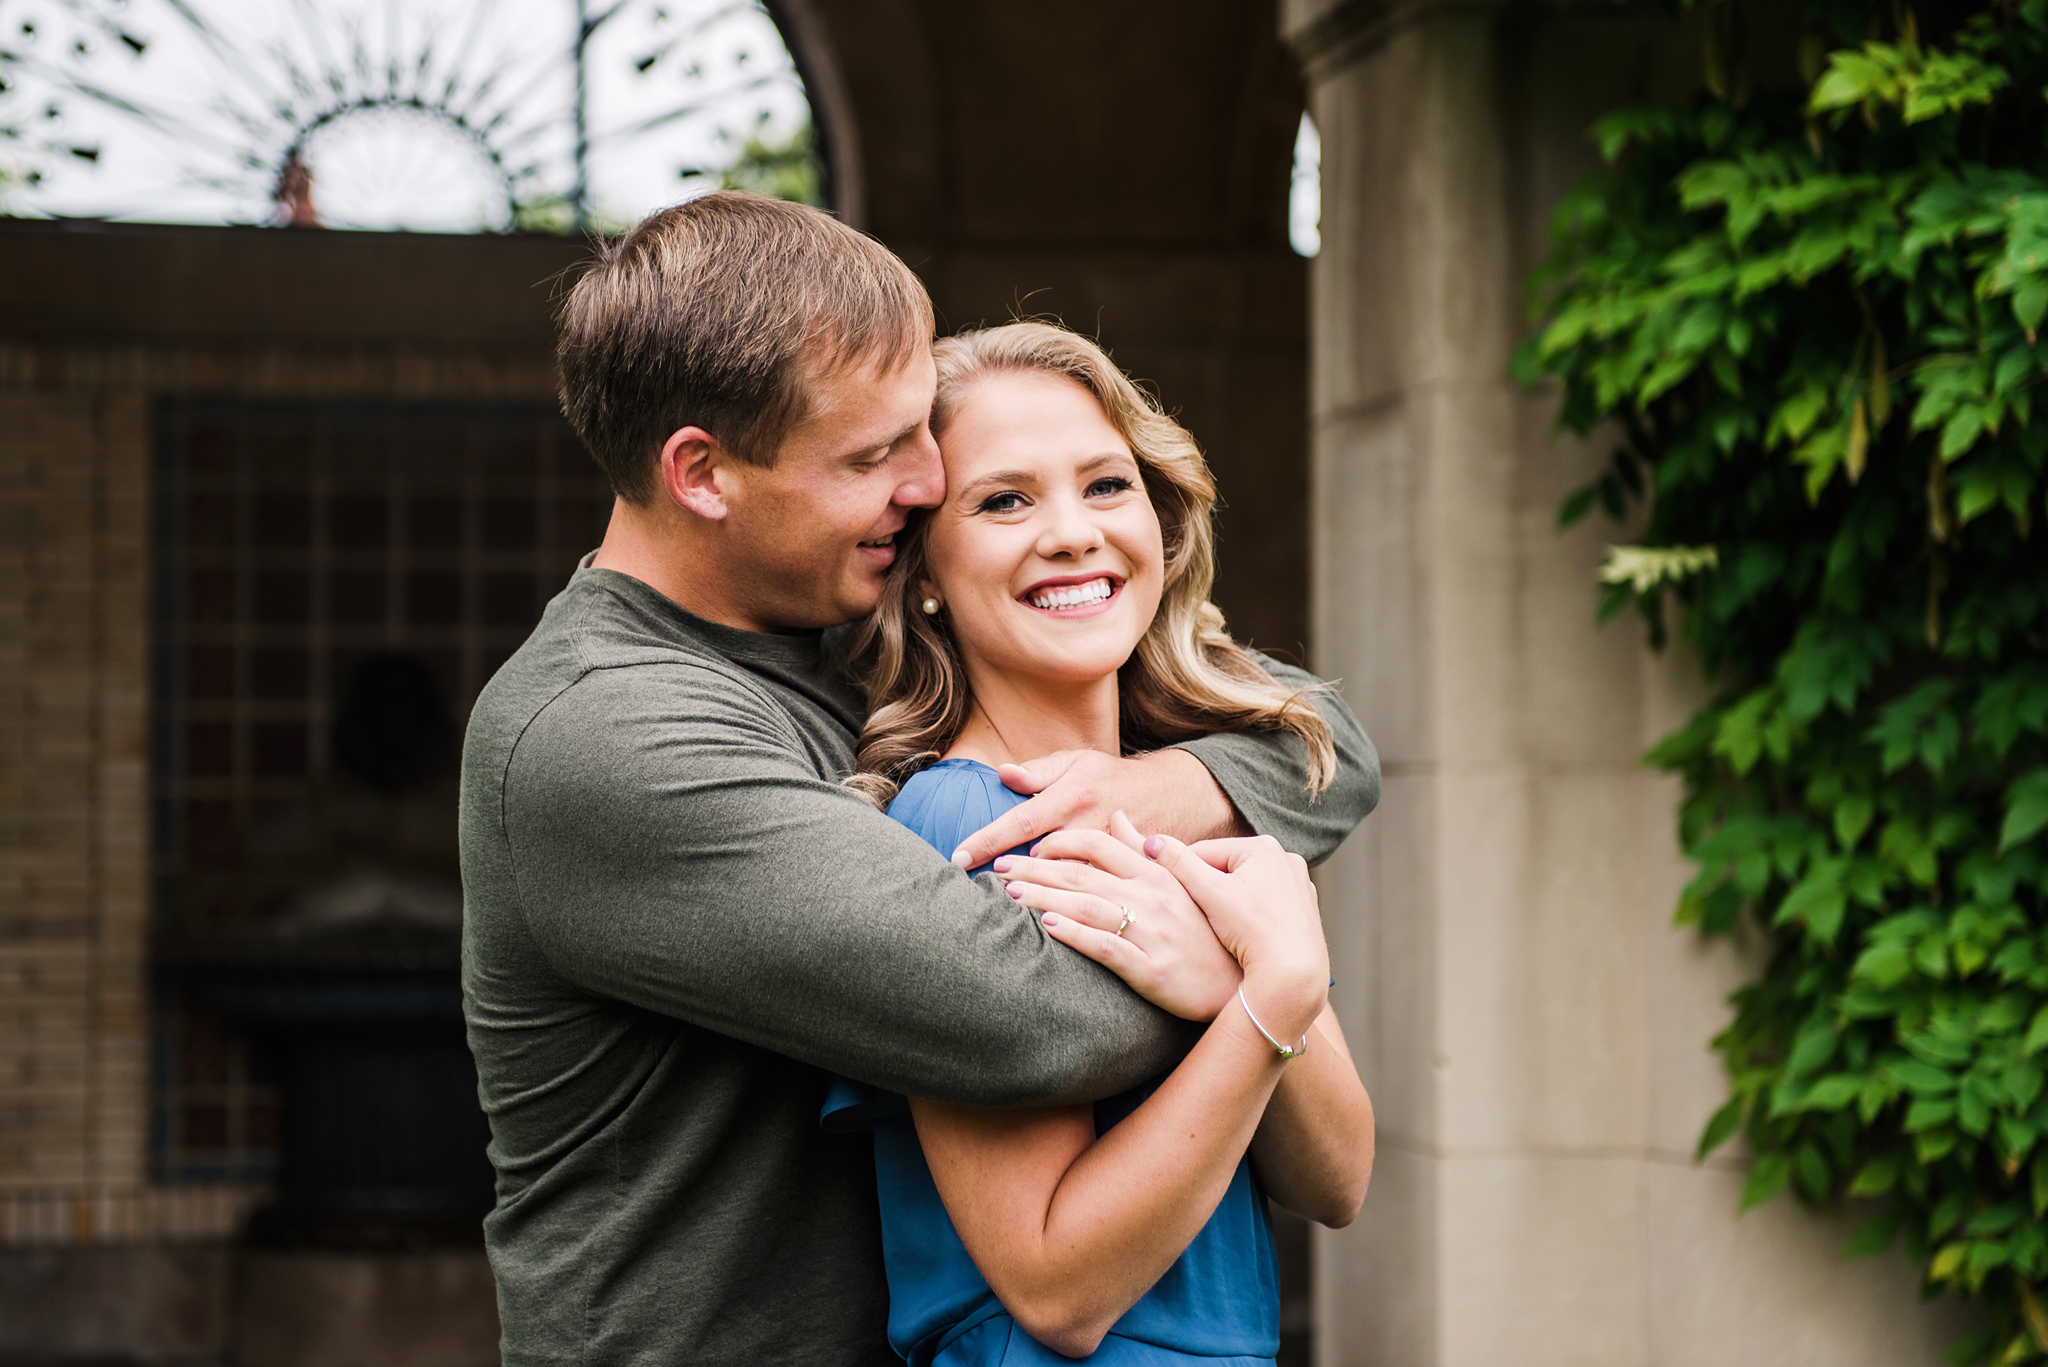 George_Eastman_House_Rochester_Yacht_Club_Rochester_Engagement_Session_JILL_STUDIO_Rochester_NY_Photographer_DSC_7980.jpg